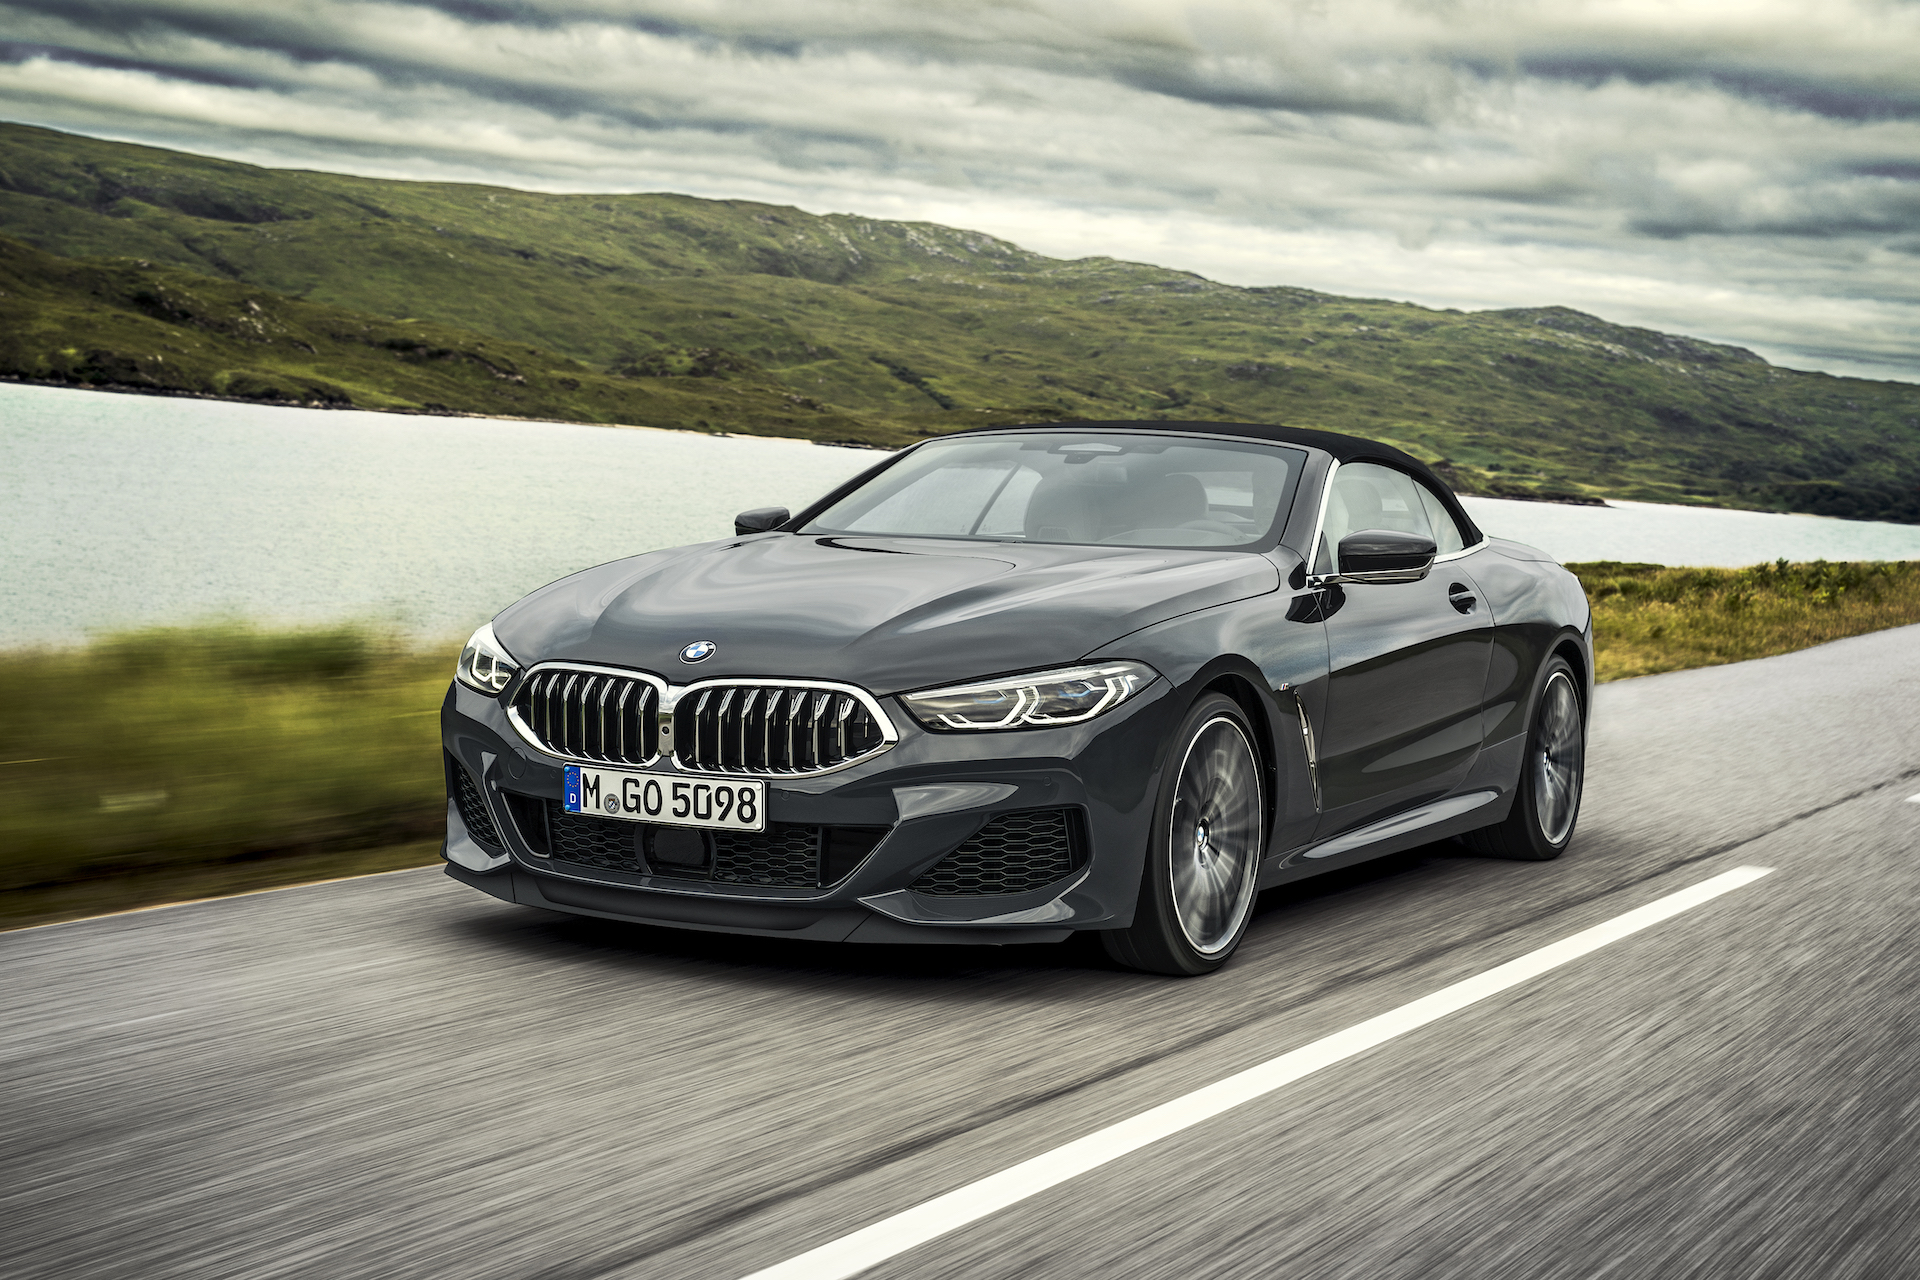 2019 BMW M850i Cabriolet Review